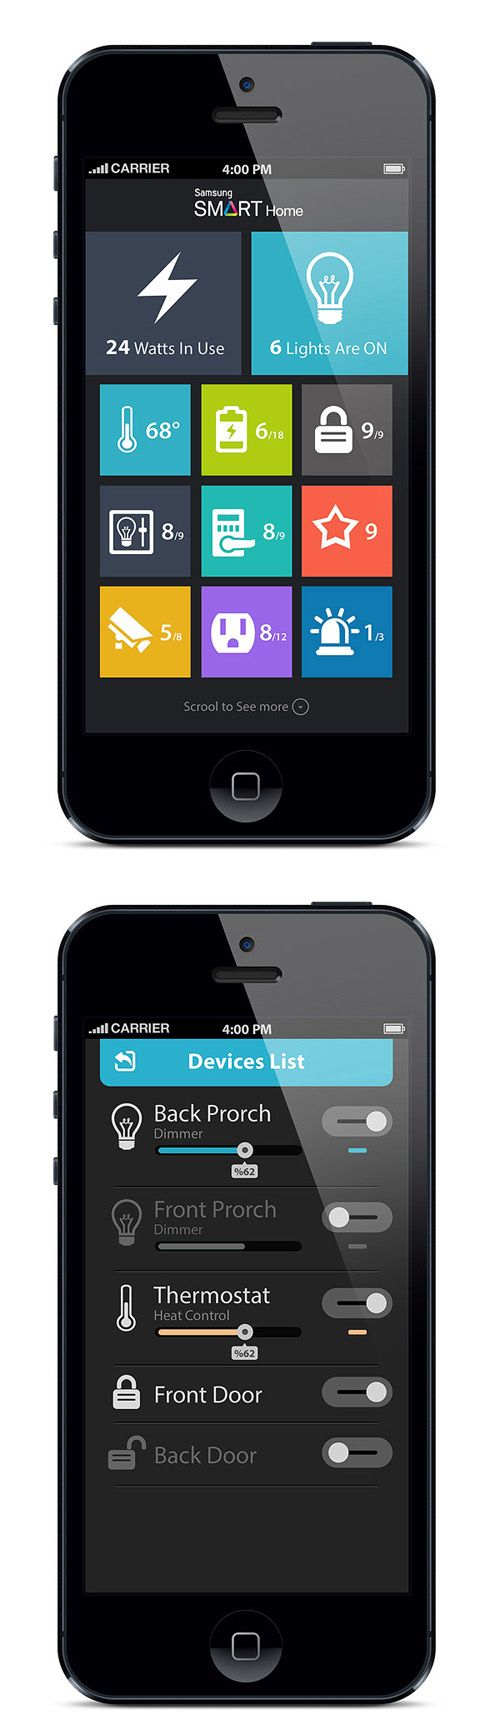 Flat Mobile UI Design and UX-50  #domotics #domotica